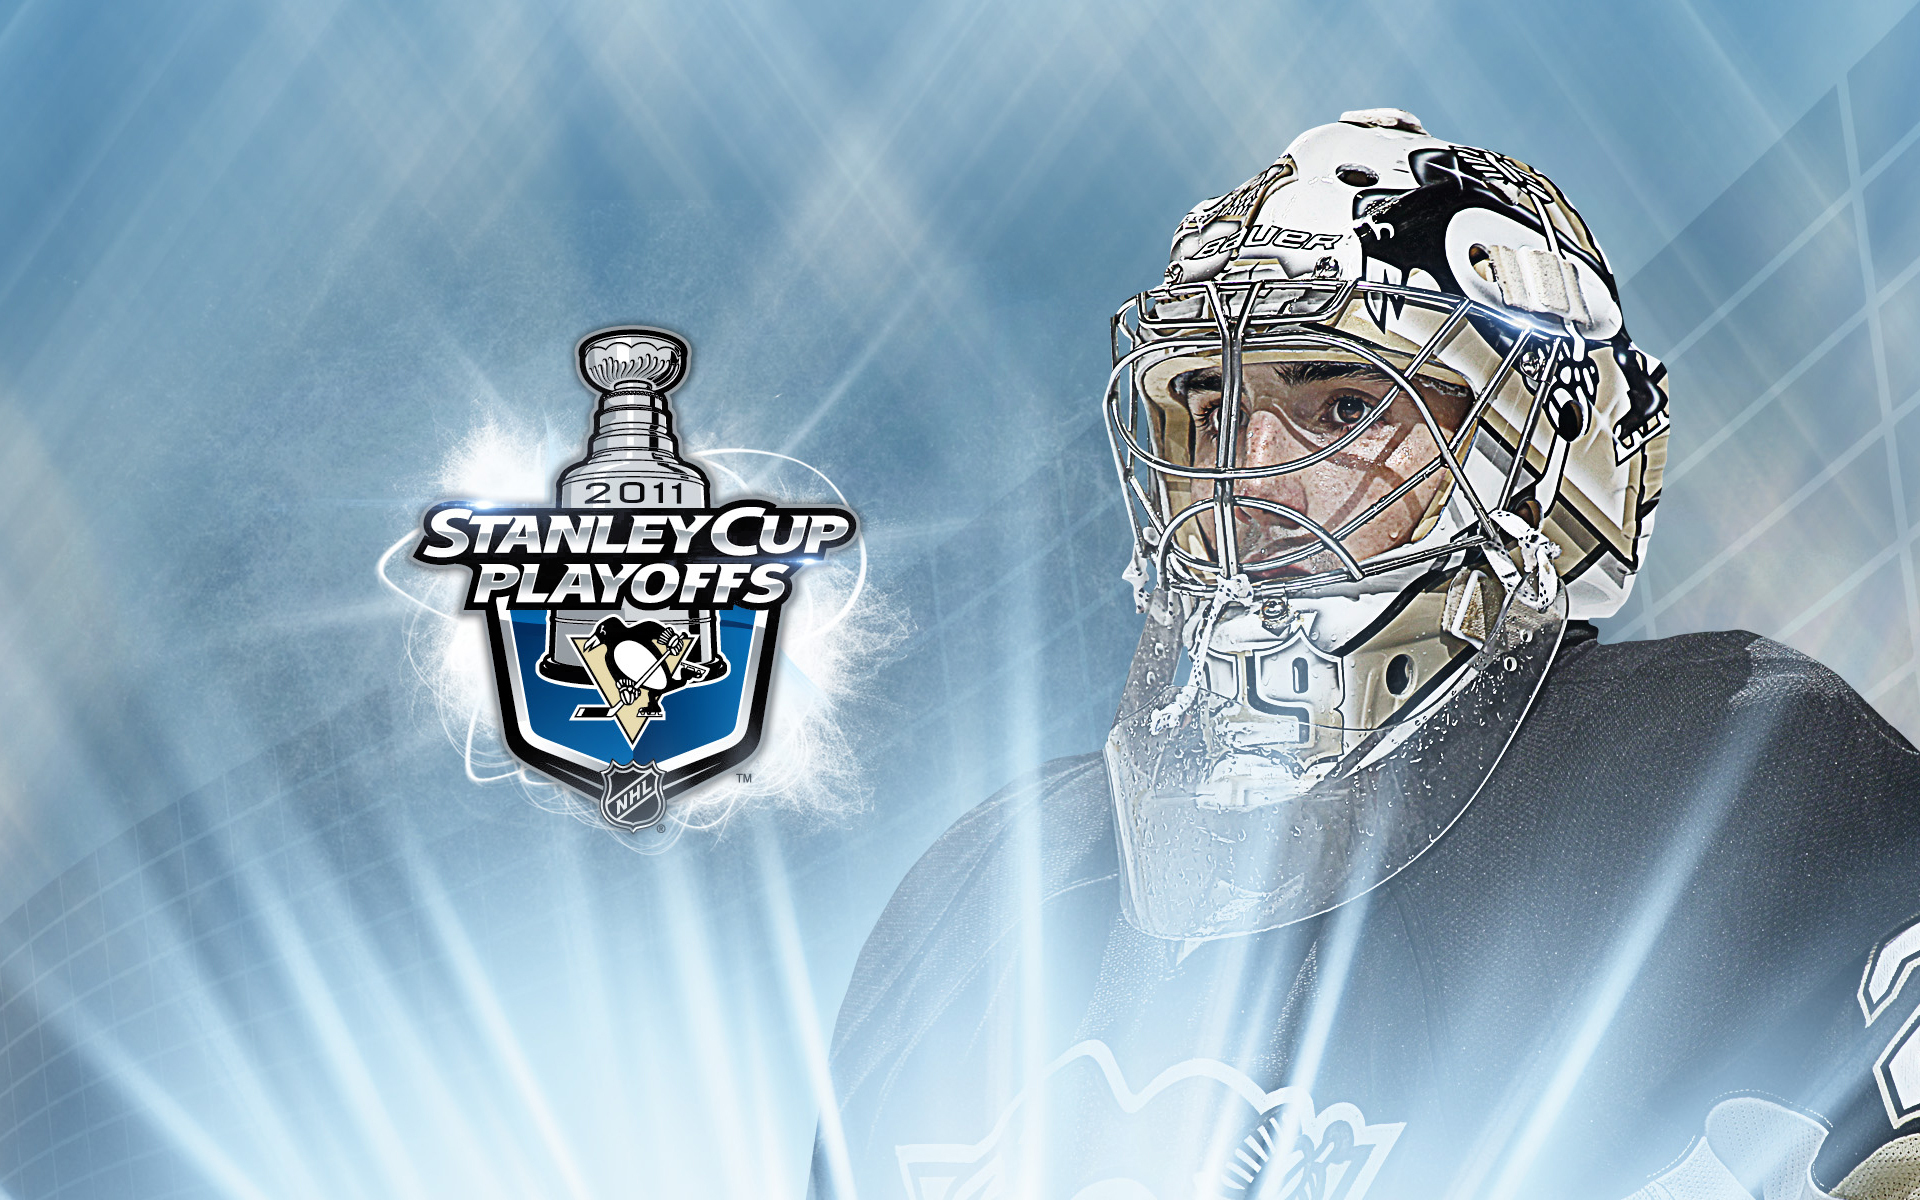 2011 Playoffs   Marc Andre Fleury   Marc Andre Fleury Wallpaper 1920x1200